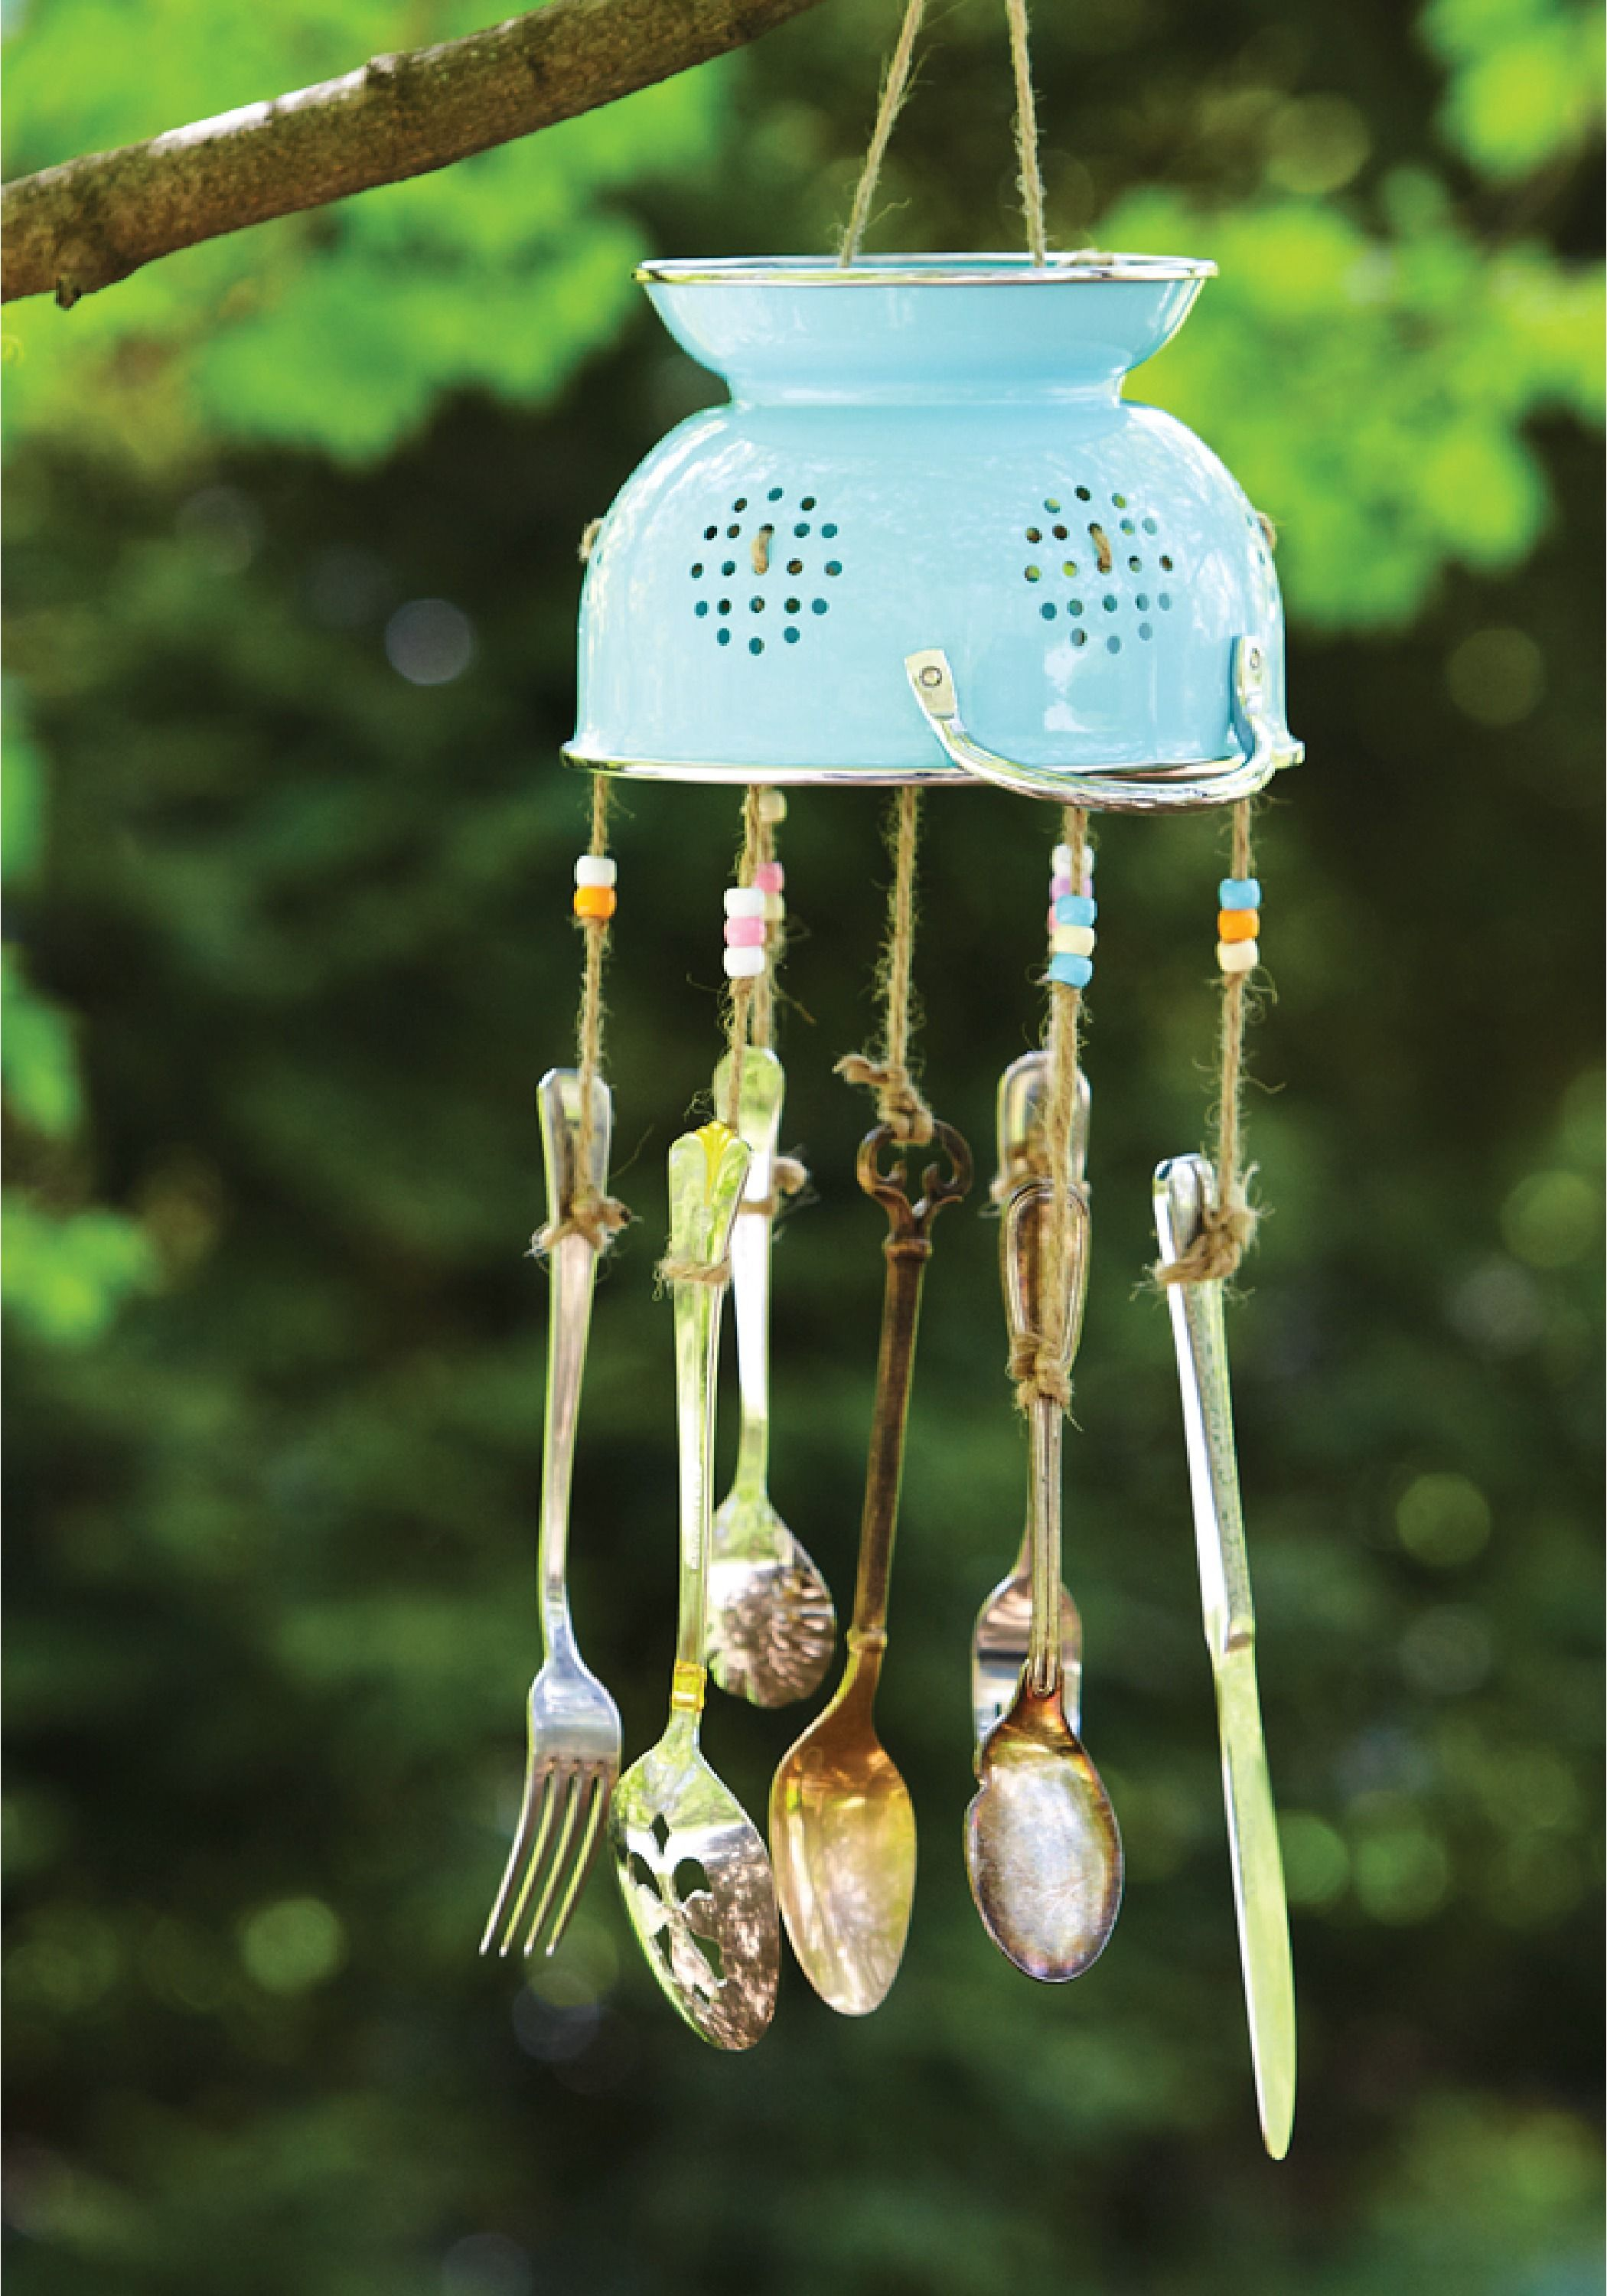 P G Good Everyday Let S Do Some Good Wind Chimes Homemade Diy